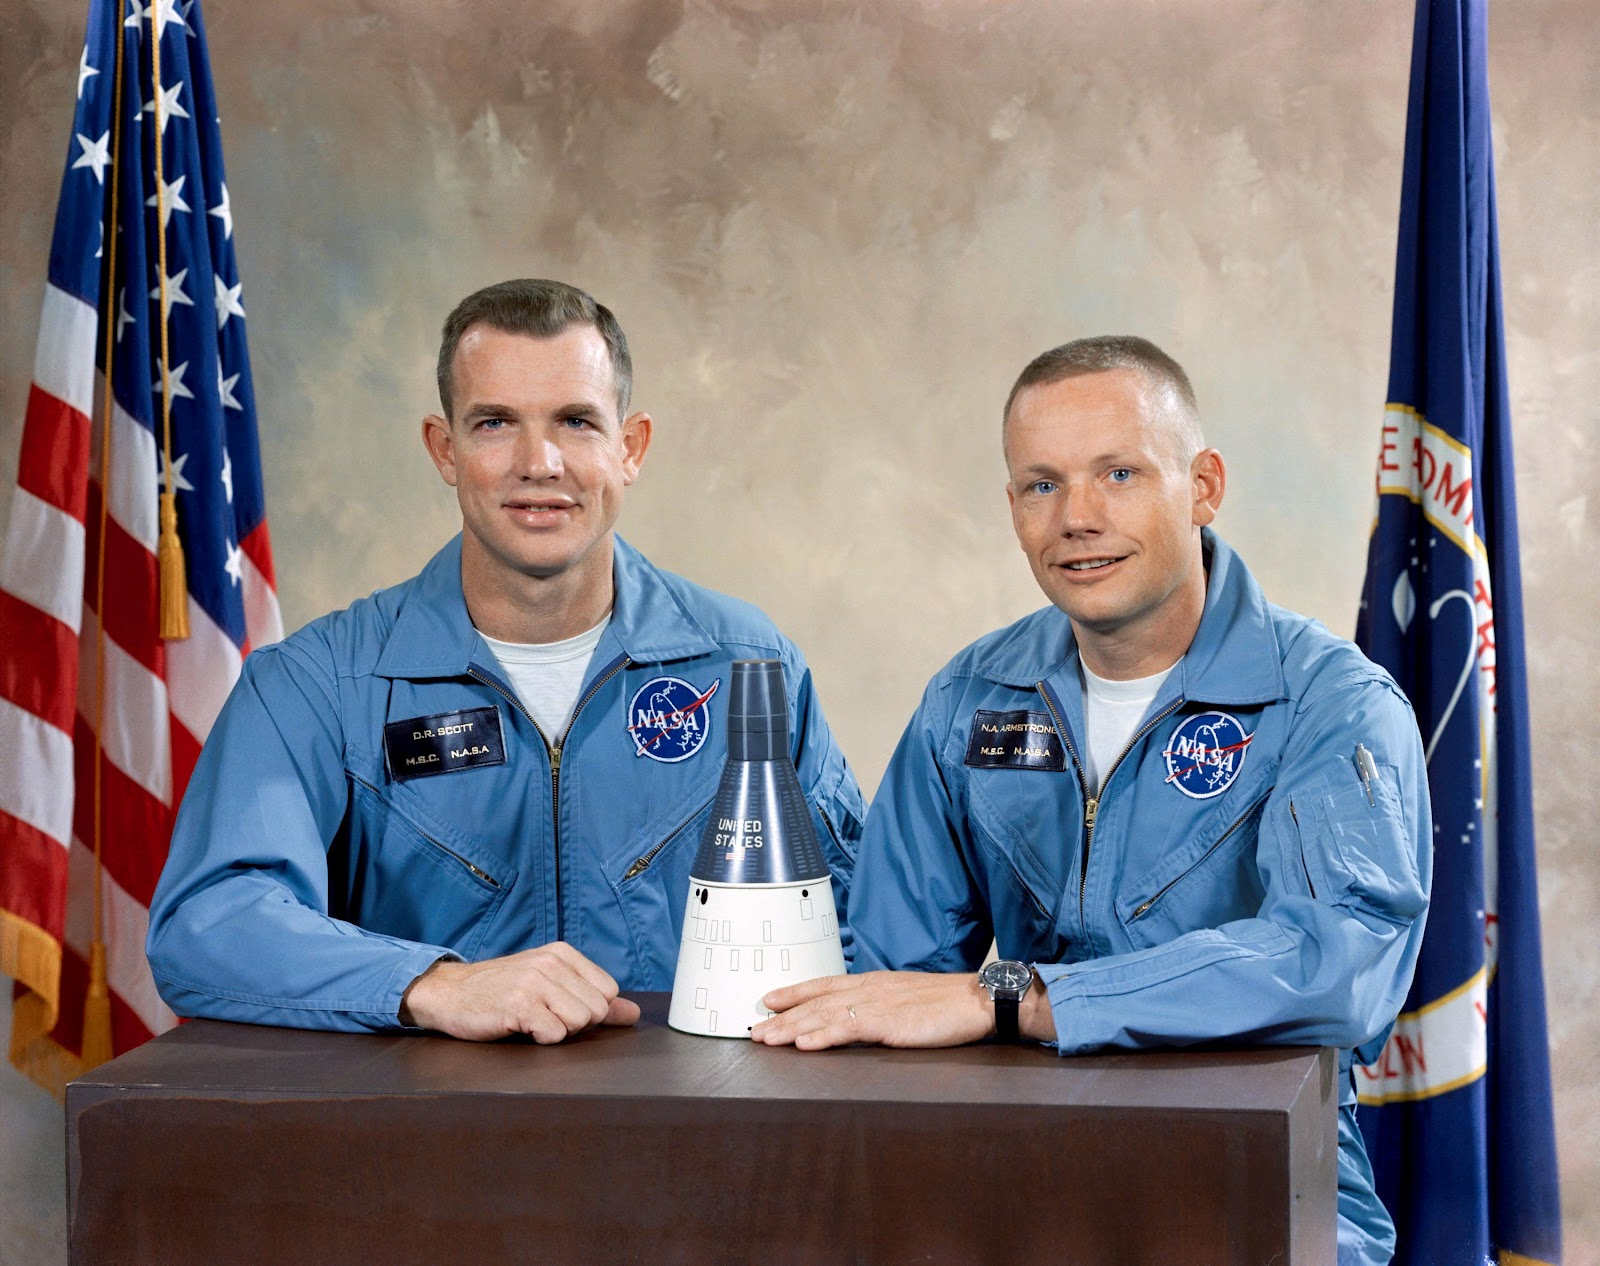 college for astronaut neil armstrong - photo #13